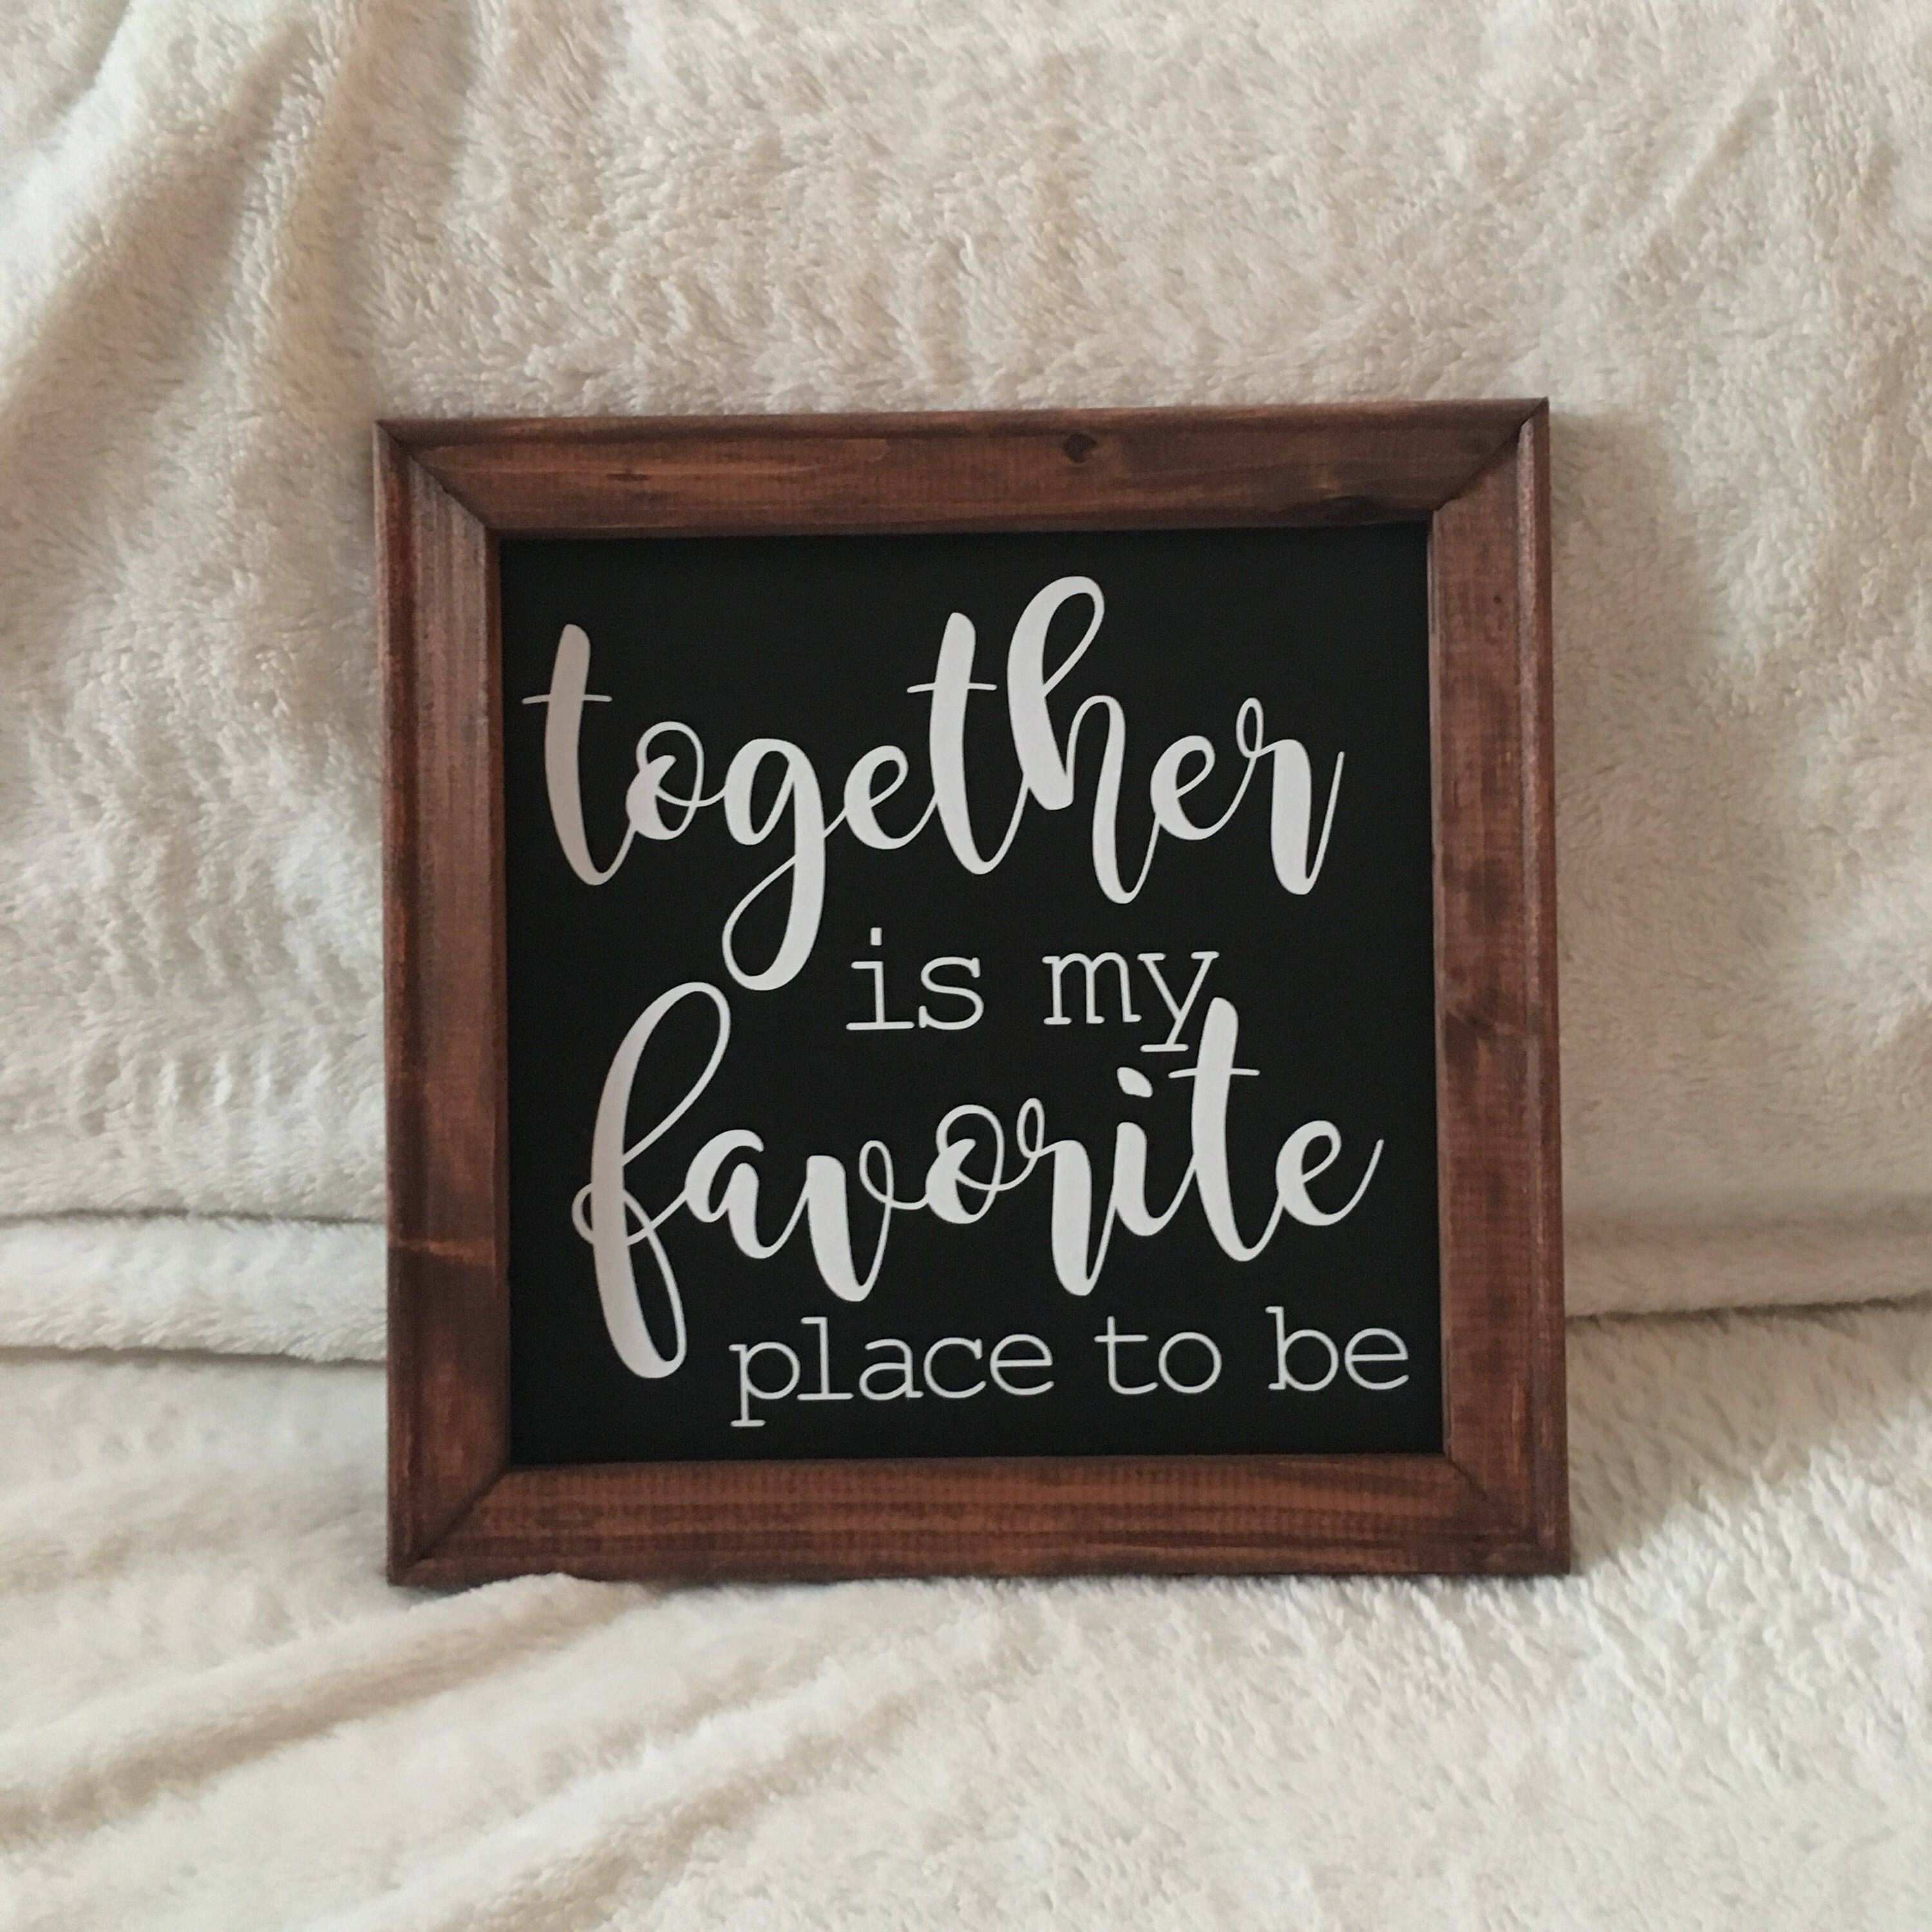 Excited to share the latest addition to my etsy shop Home decor